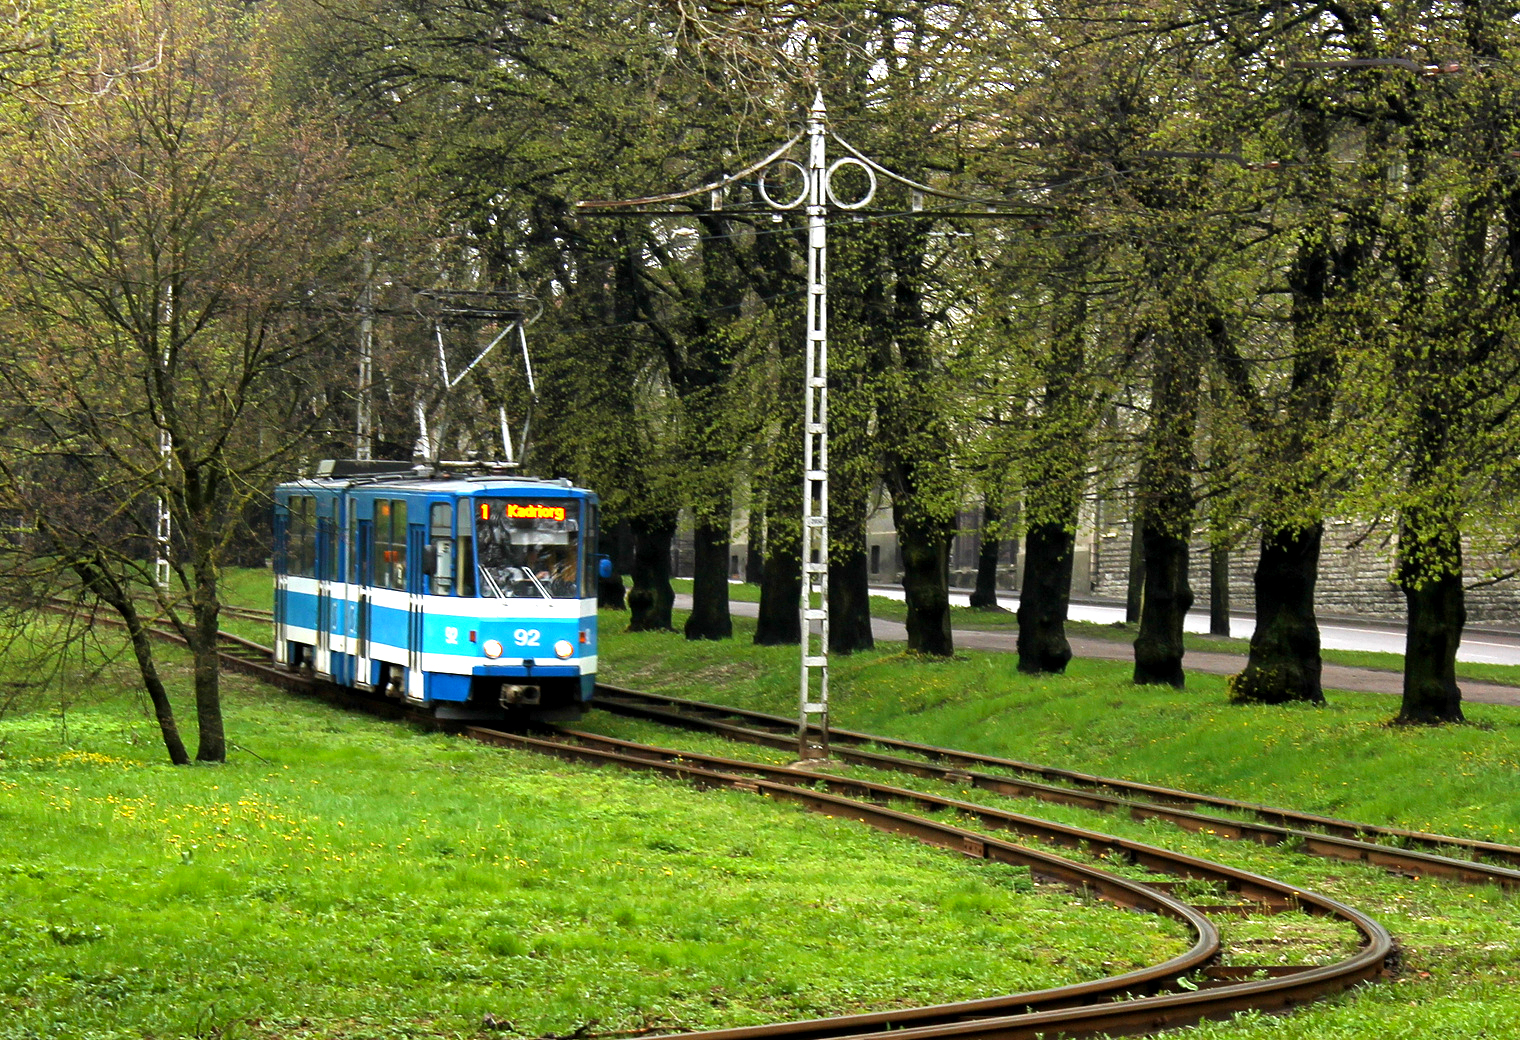 A tram in Tallinn during a rainy day